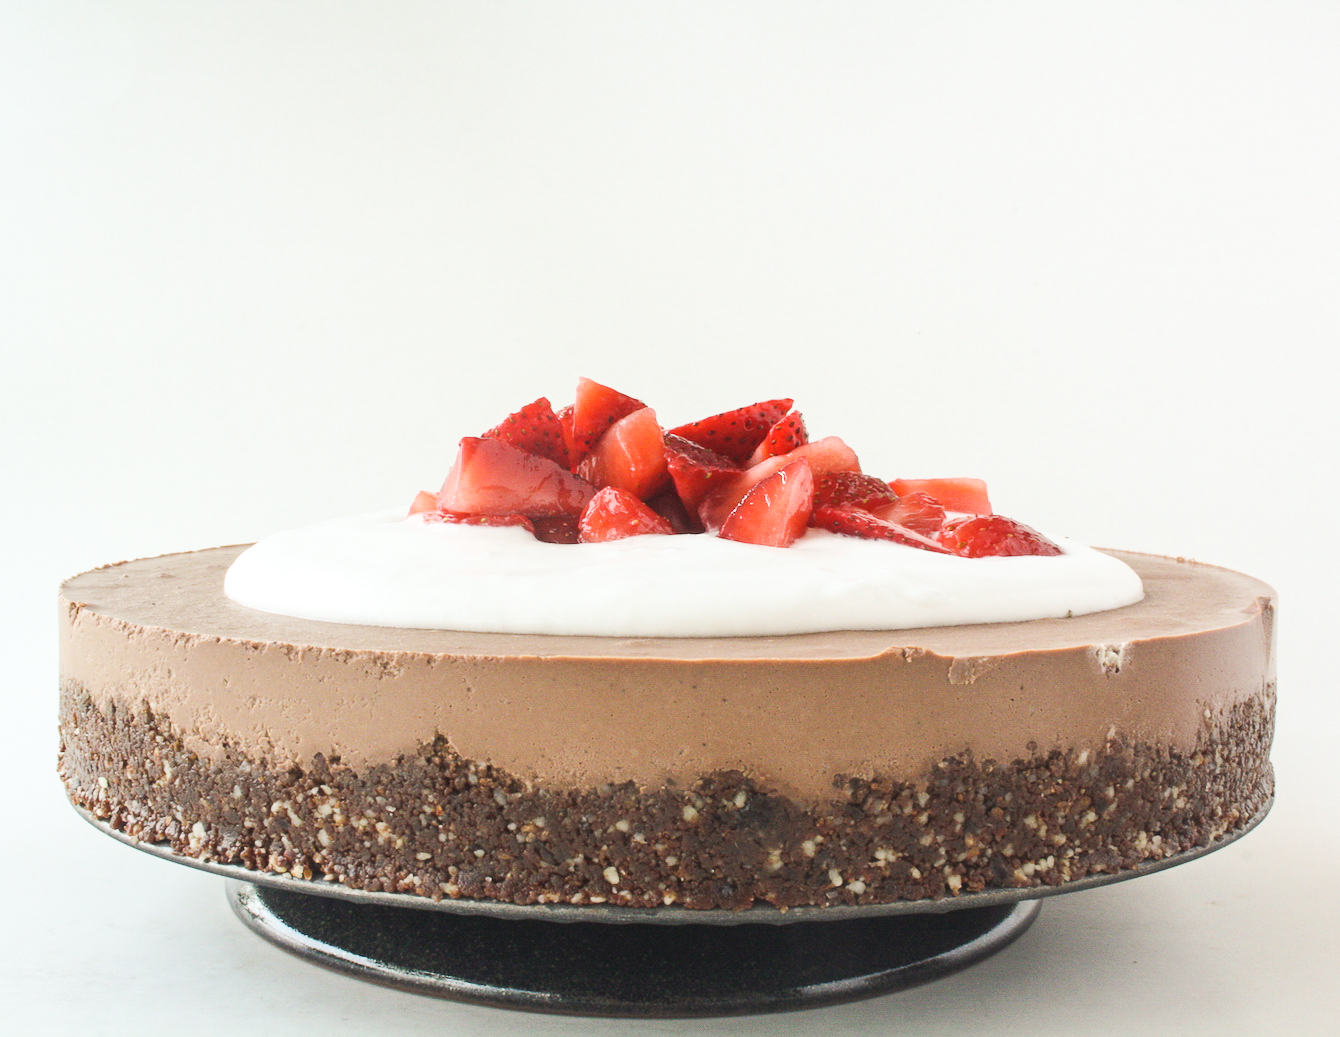 Creamy, naturally-sweetened chocolate cheesecake made with cashews, dates and almonds!